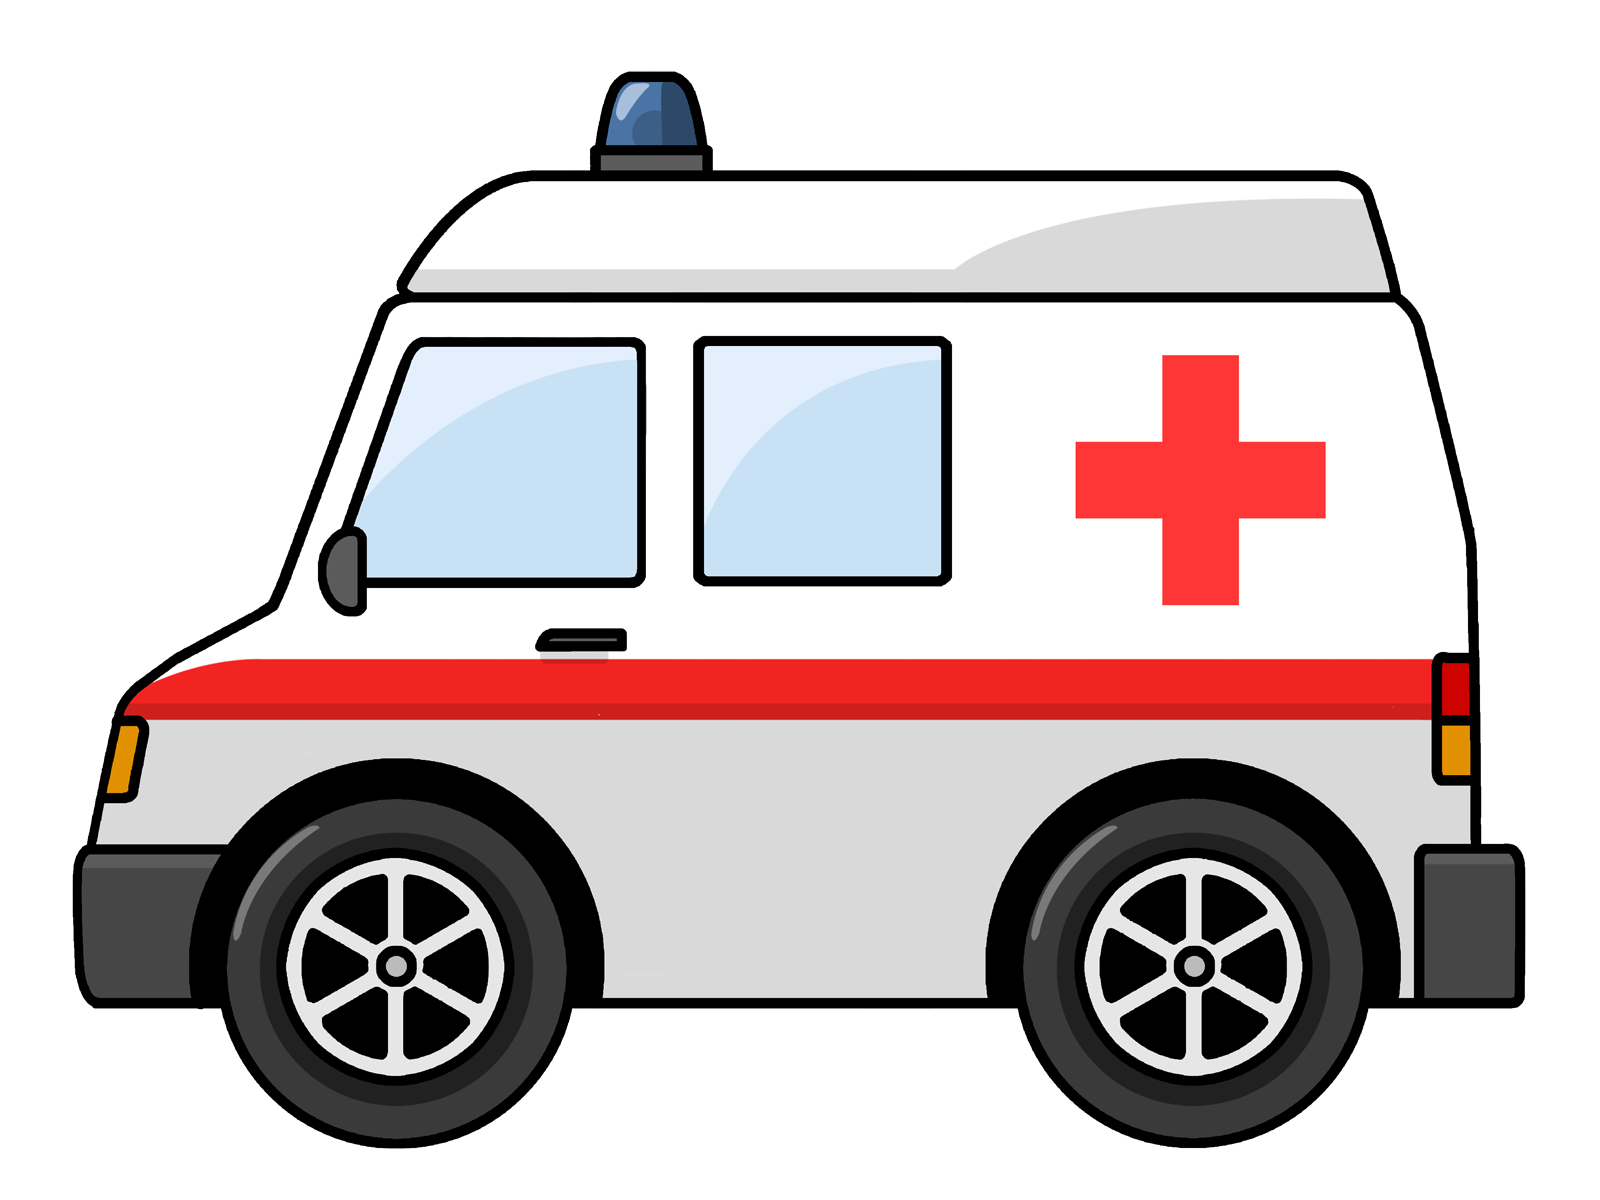 ambulance seeing an ambulance is very unlucky unless you pinch rh pinterest com ambulance clipart pictures ambulance clipart gif